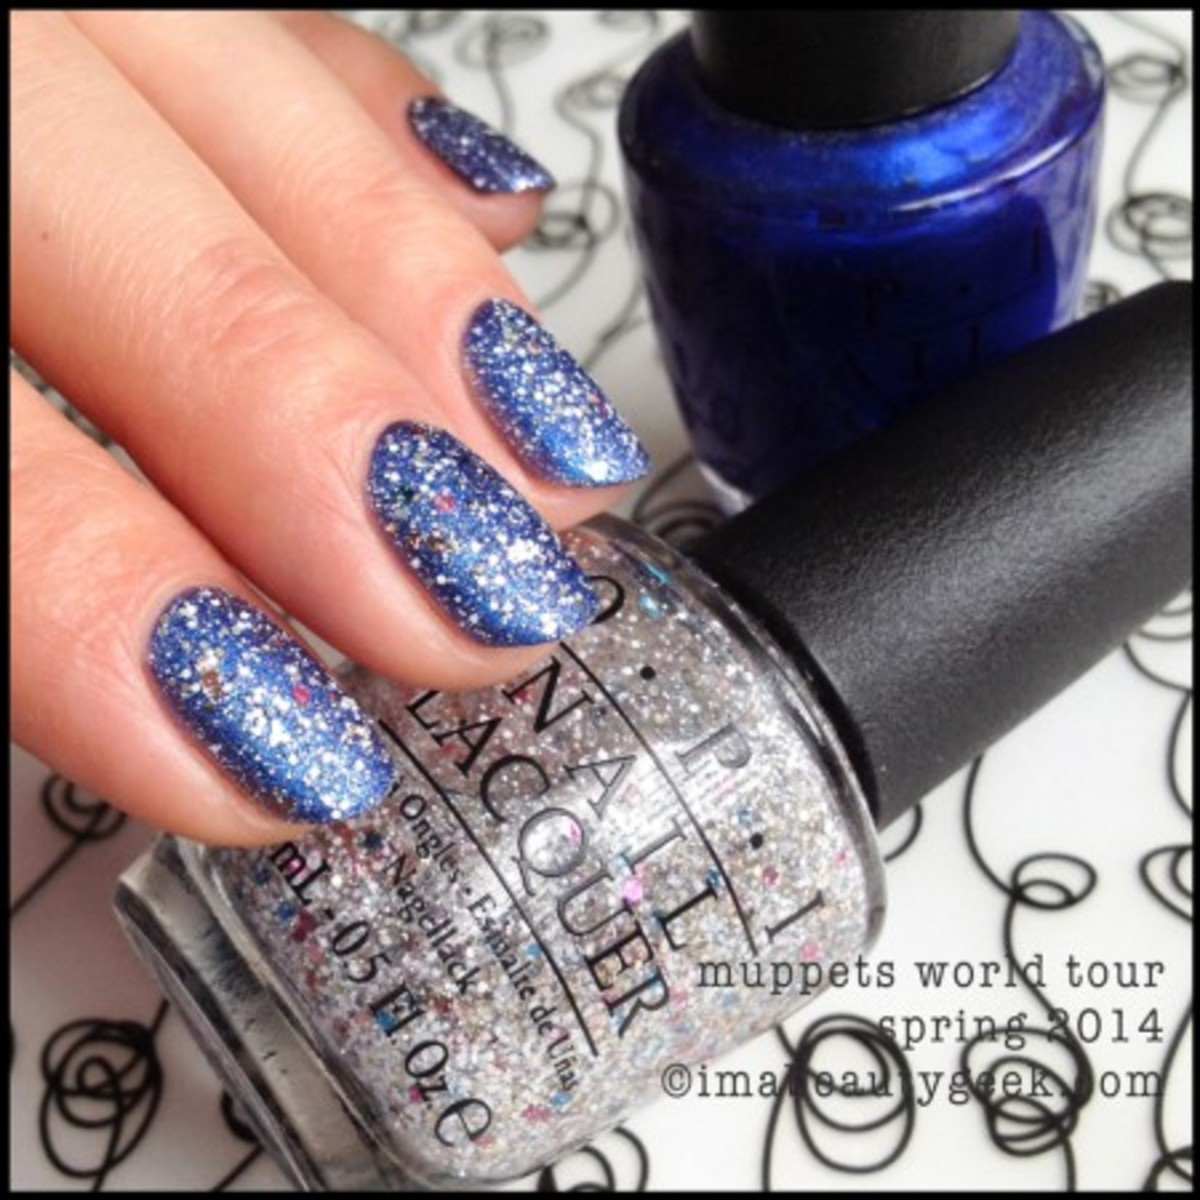 OPI-Muppets-World-Tour-Spring-2014-450x450